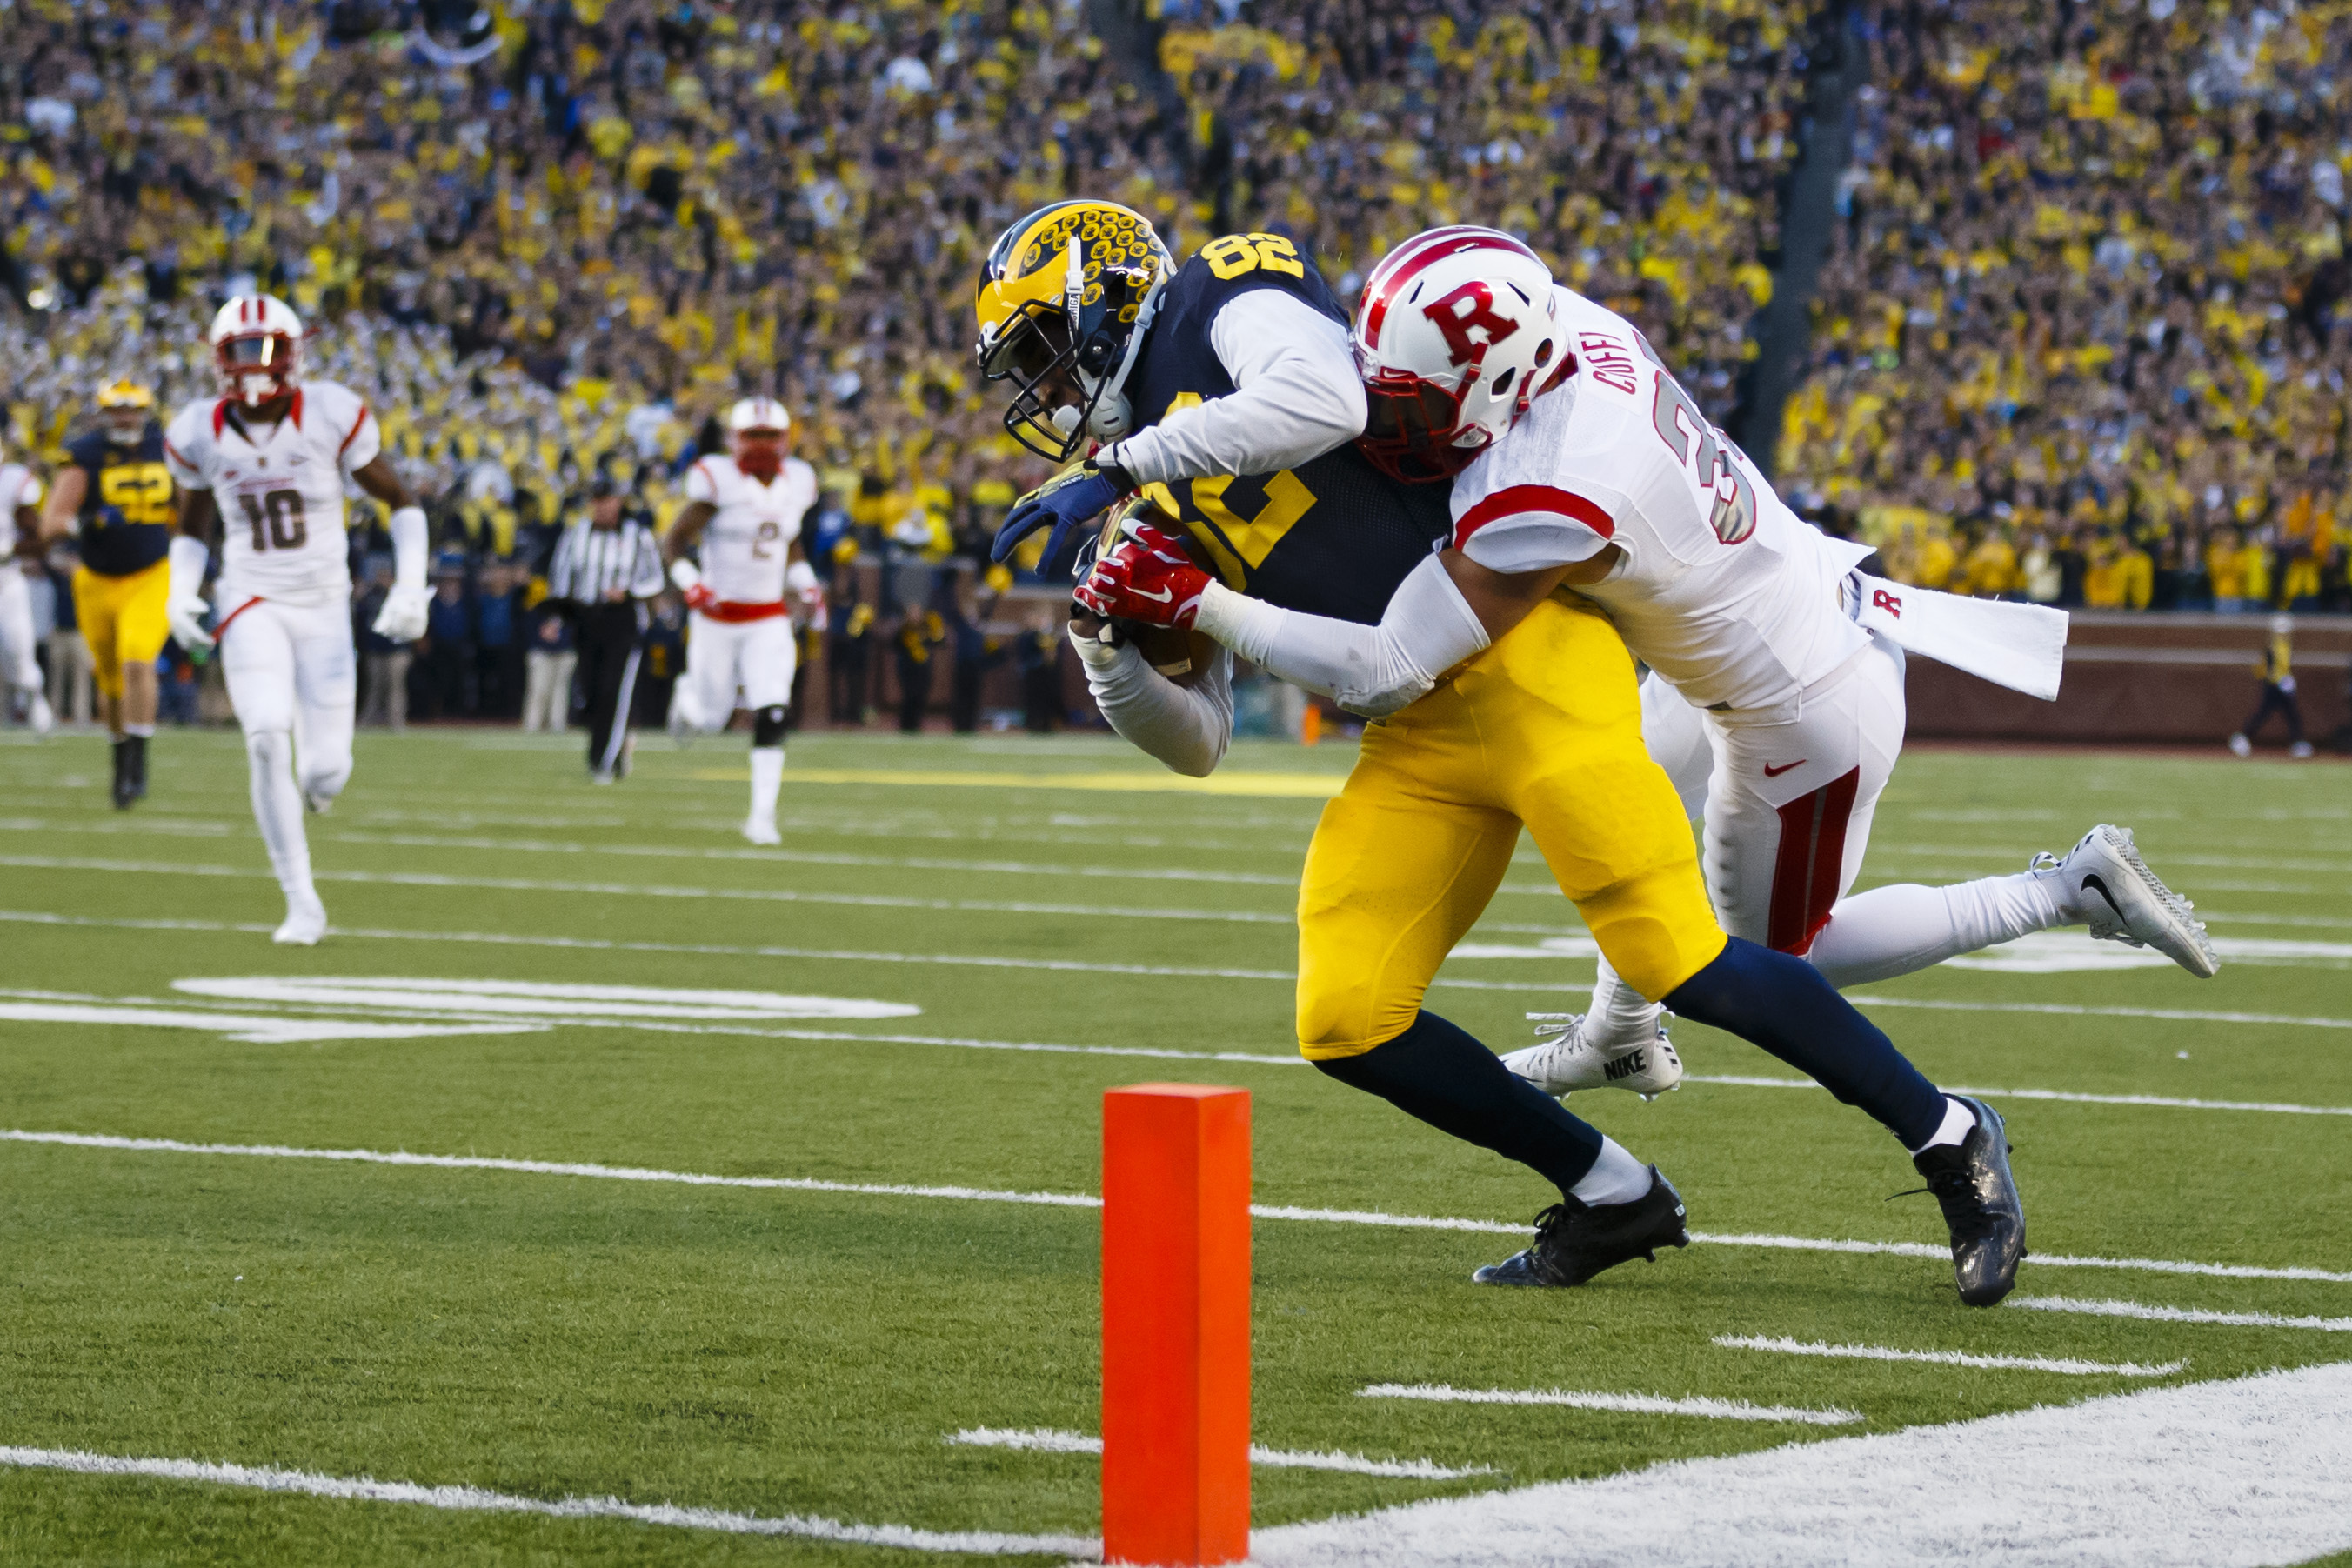 michigan vs rutgers